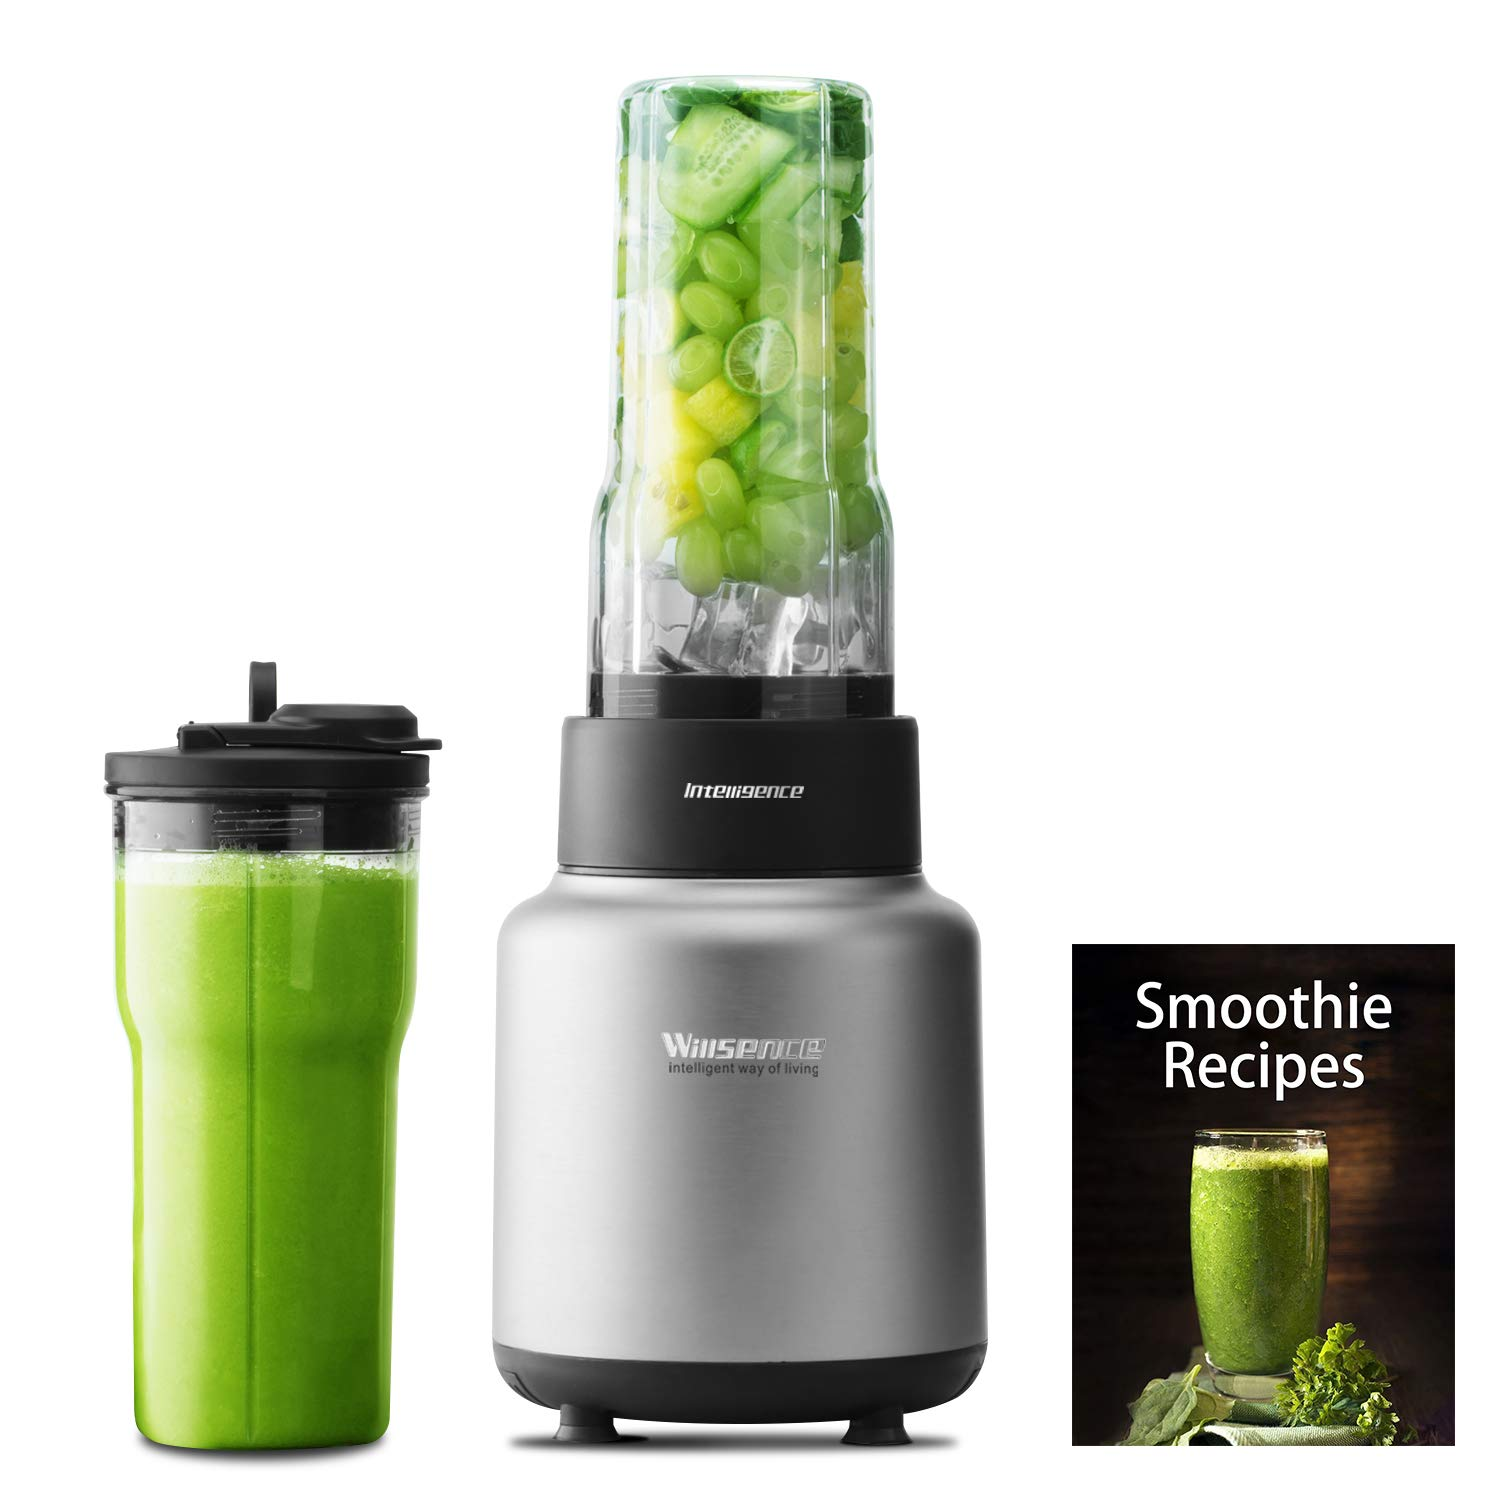 Smoothie Blender 1500W, Willsence Personal blender for Shakes and Smoothies, NUTRI-IQ Intelligent identification of Food Hardness, 2 x 24 oz to-go Tritan Cups (BPA Free) with Spout Lids